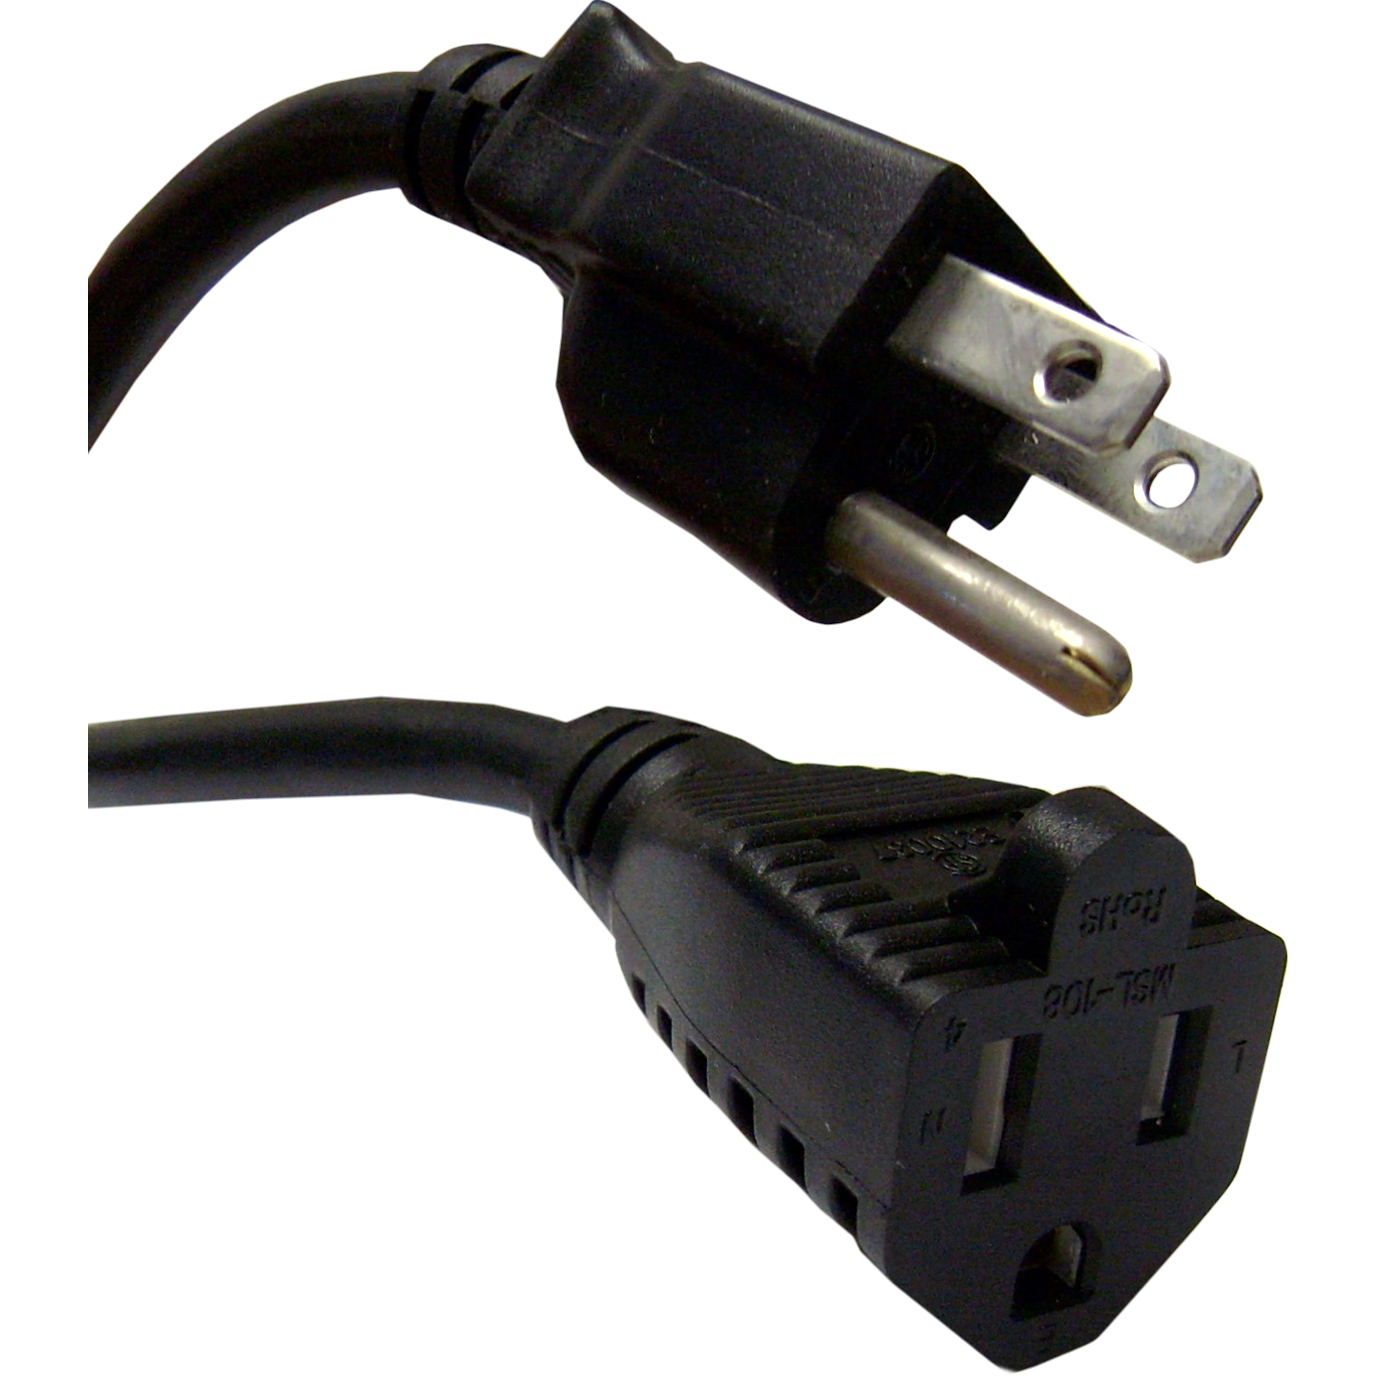 products power cords power extension cord black nema 5 15p to nema 5